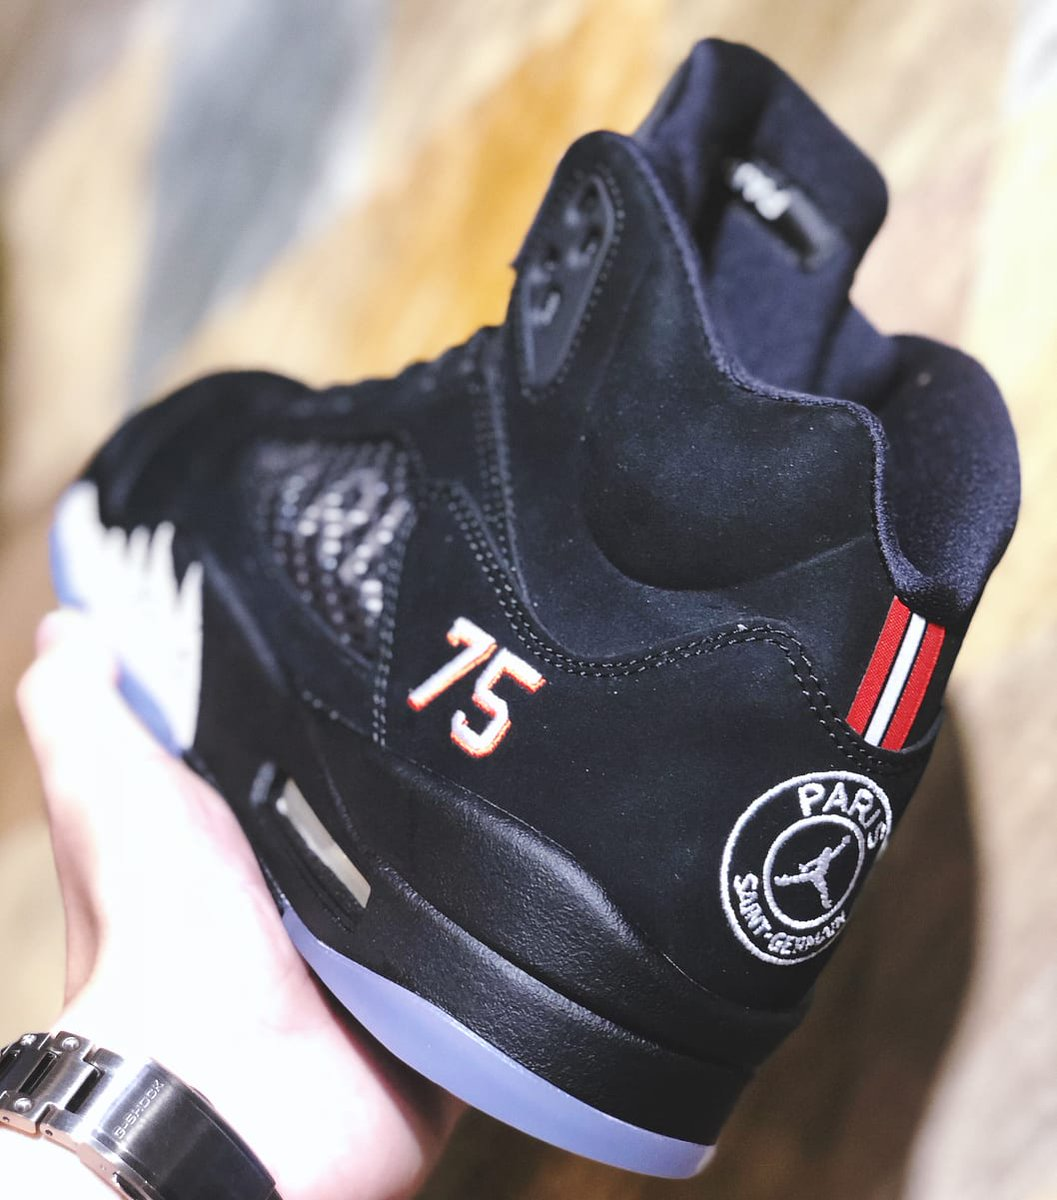 58d4f9cd2fb8a6 Paris Saint-Germain s Air Jordan 5 will cost  225